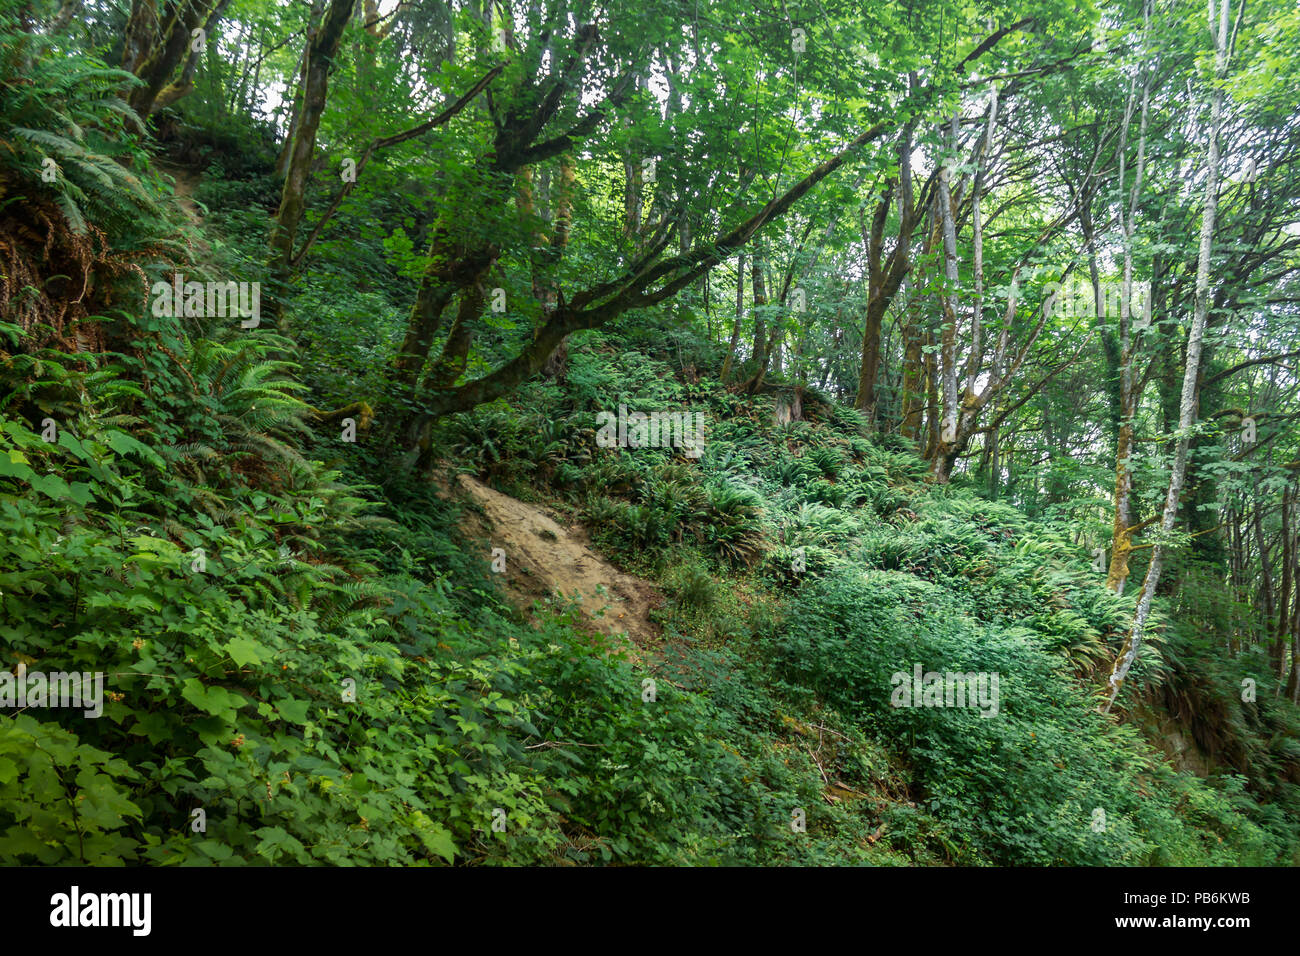 dense green vegitation throughought a forest with tall mossy trees - Stock Image